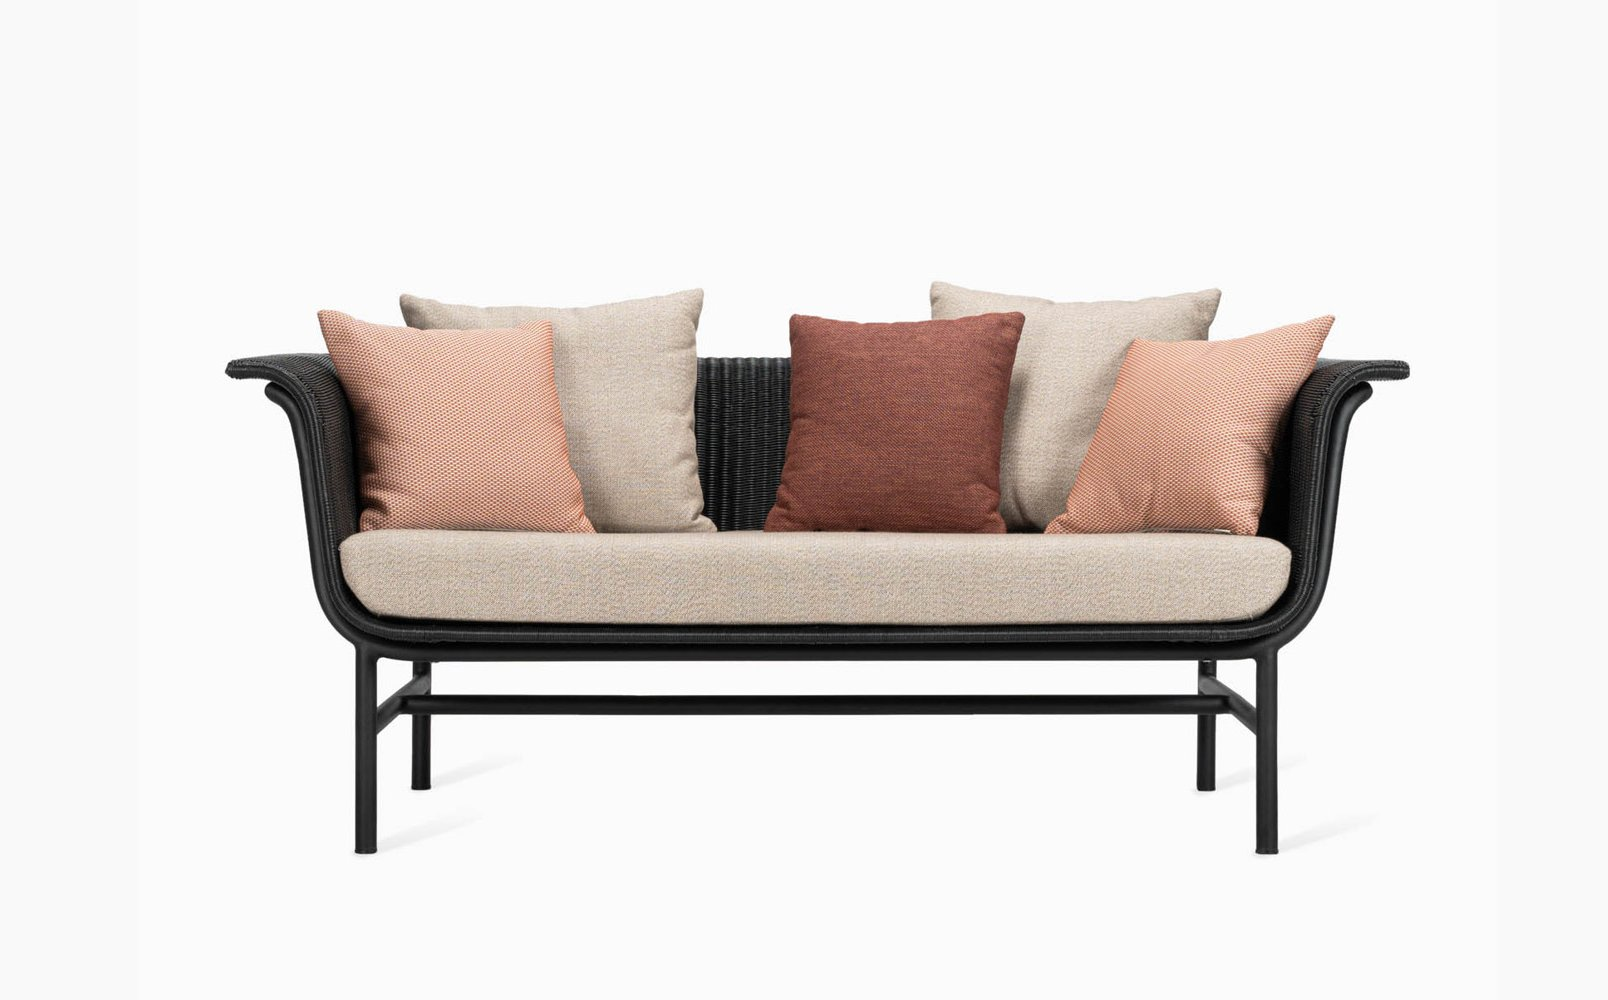 vincent-sheppard-wicked-lounge-sofa-2S